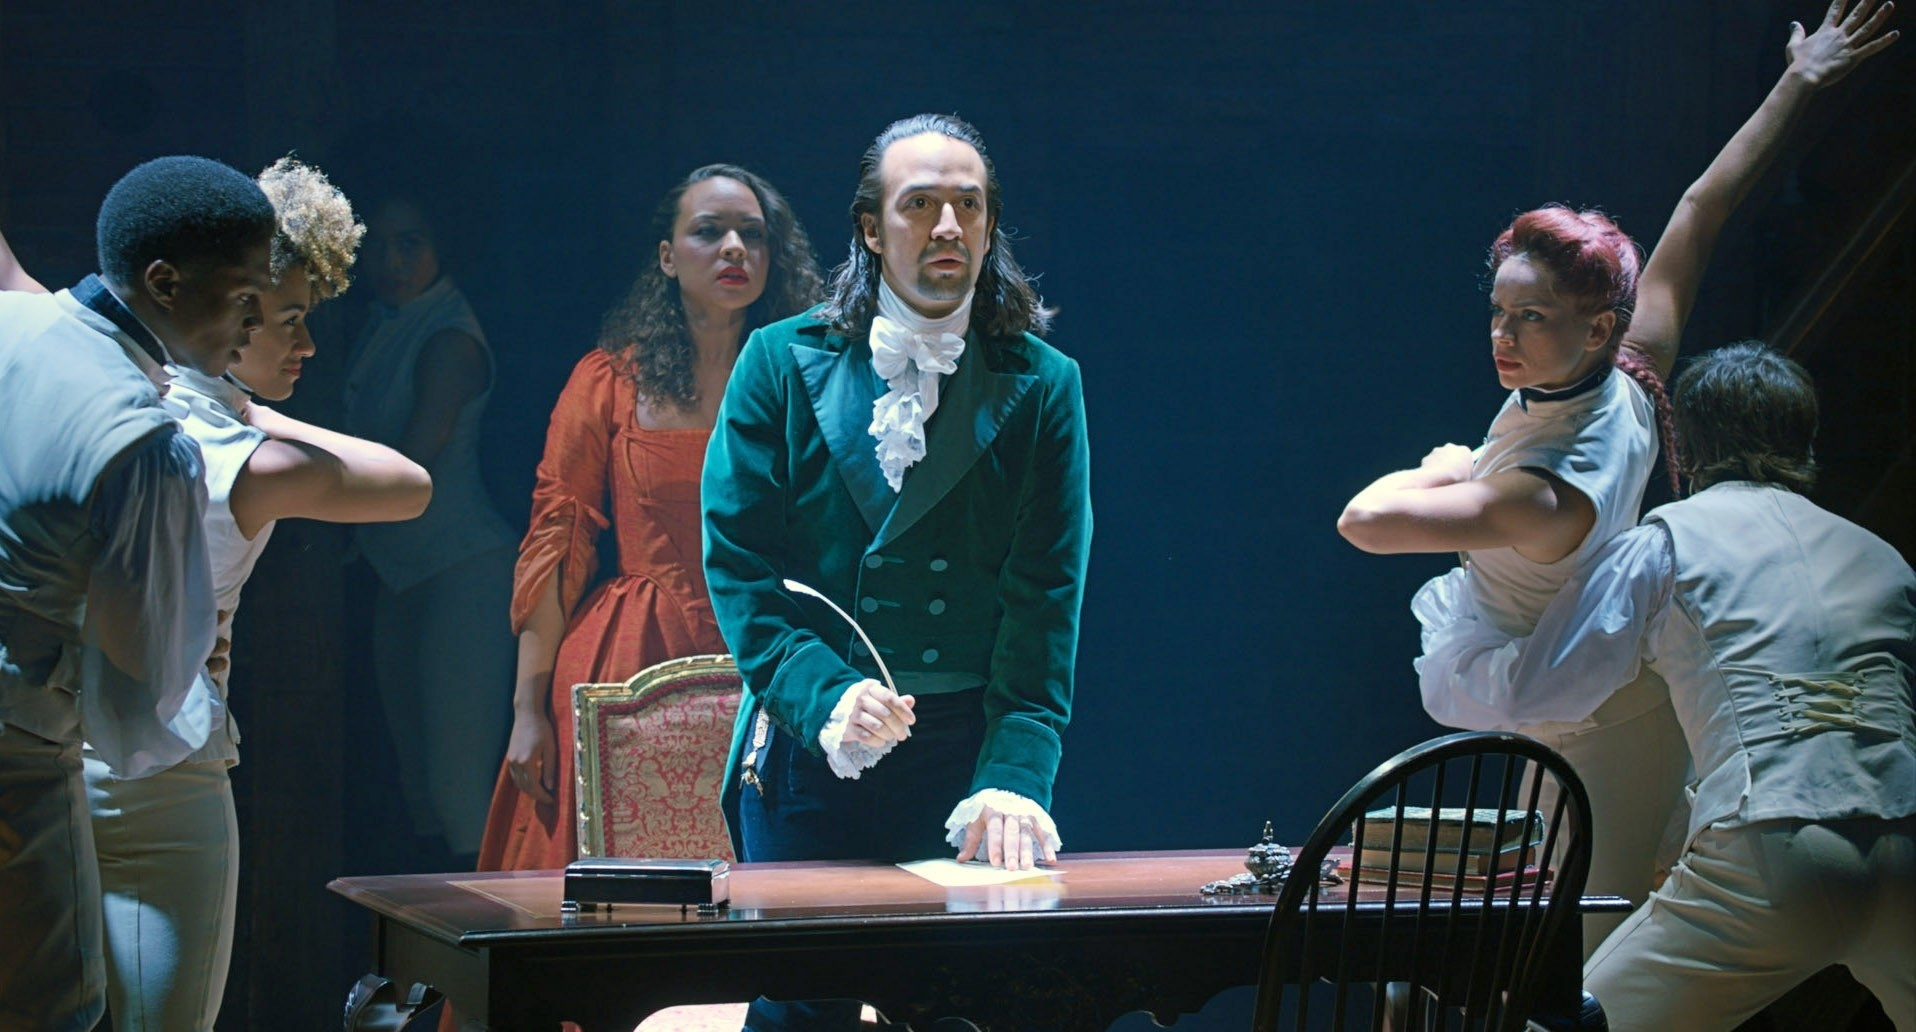 Lin-Manuel Miranda stands in front of a desk with a quill while dancers dance around him and Jasmine Cephas Jones sings behind him